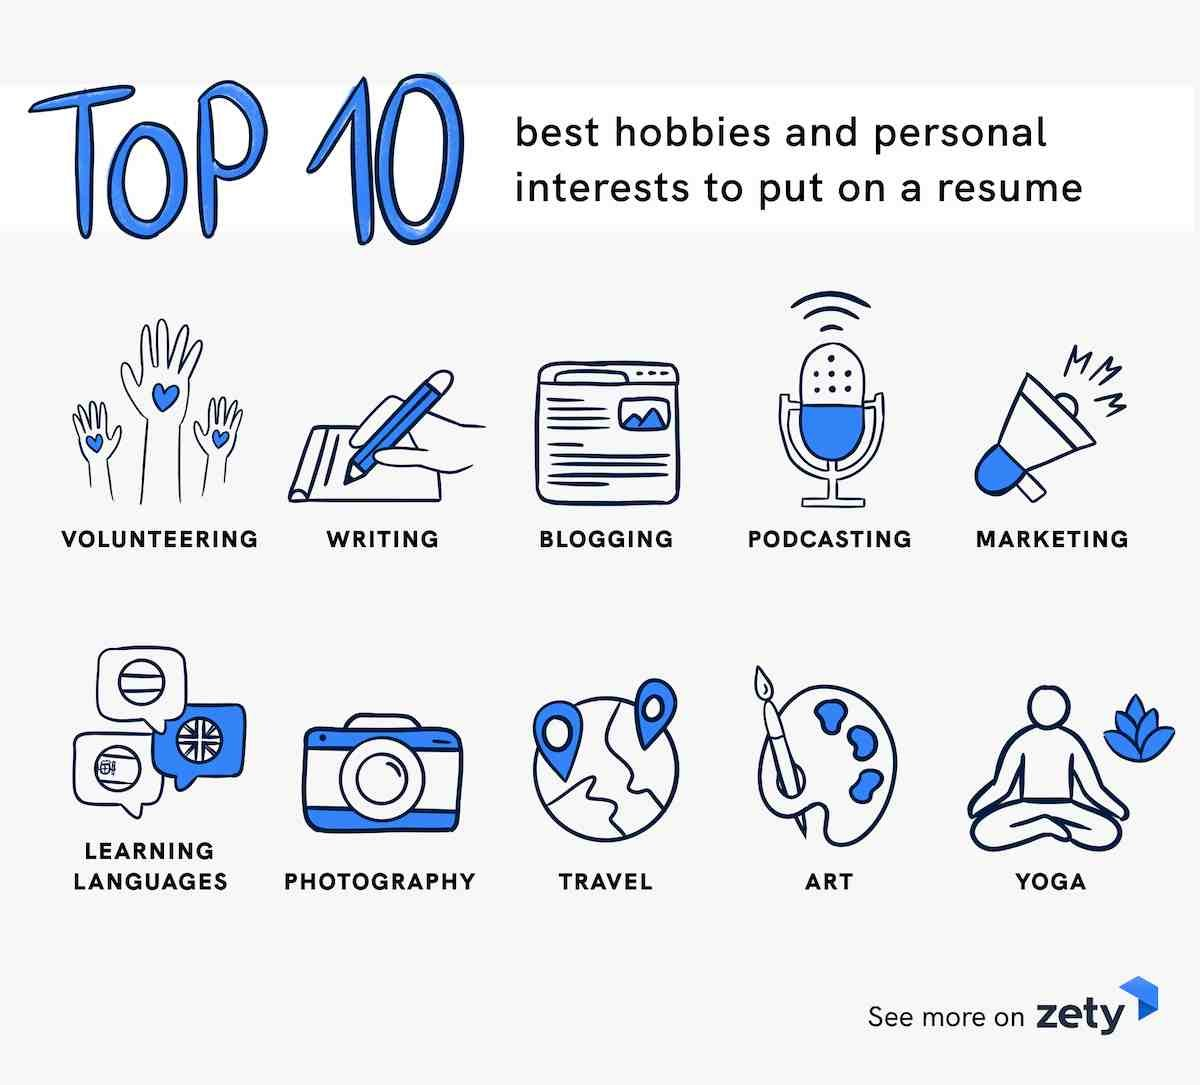 of hobbies and interests for resume cv examples good top best personal to put on Resume Good Hobbies For Resume